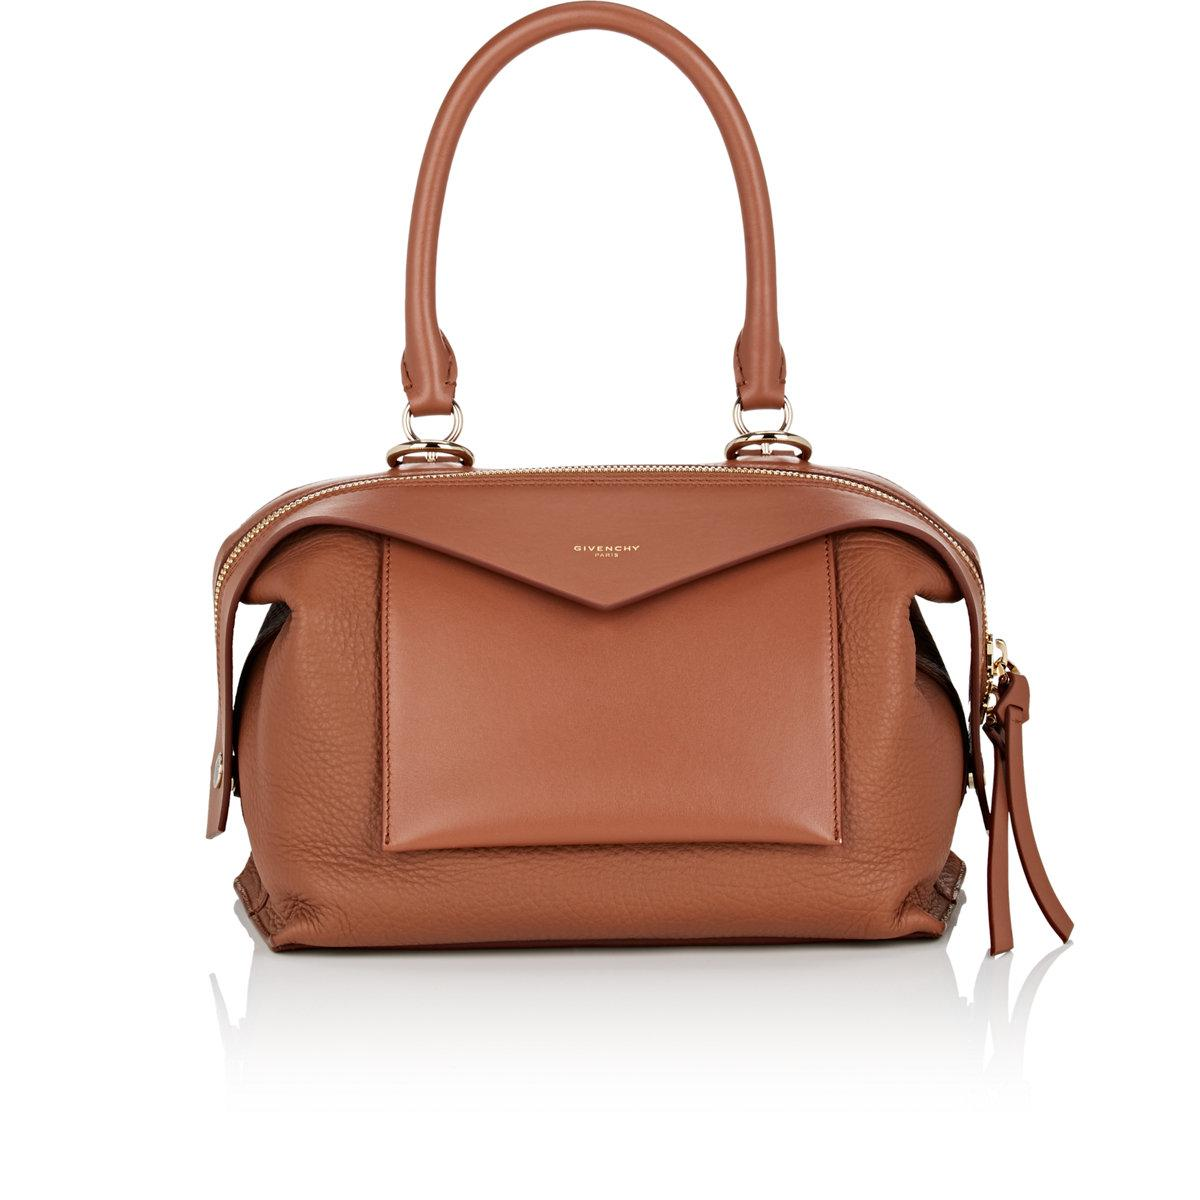 72c1dc8f46 Lyst - Givenchy Sway Small Leather Bag in Brown